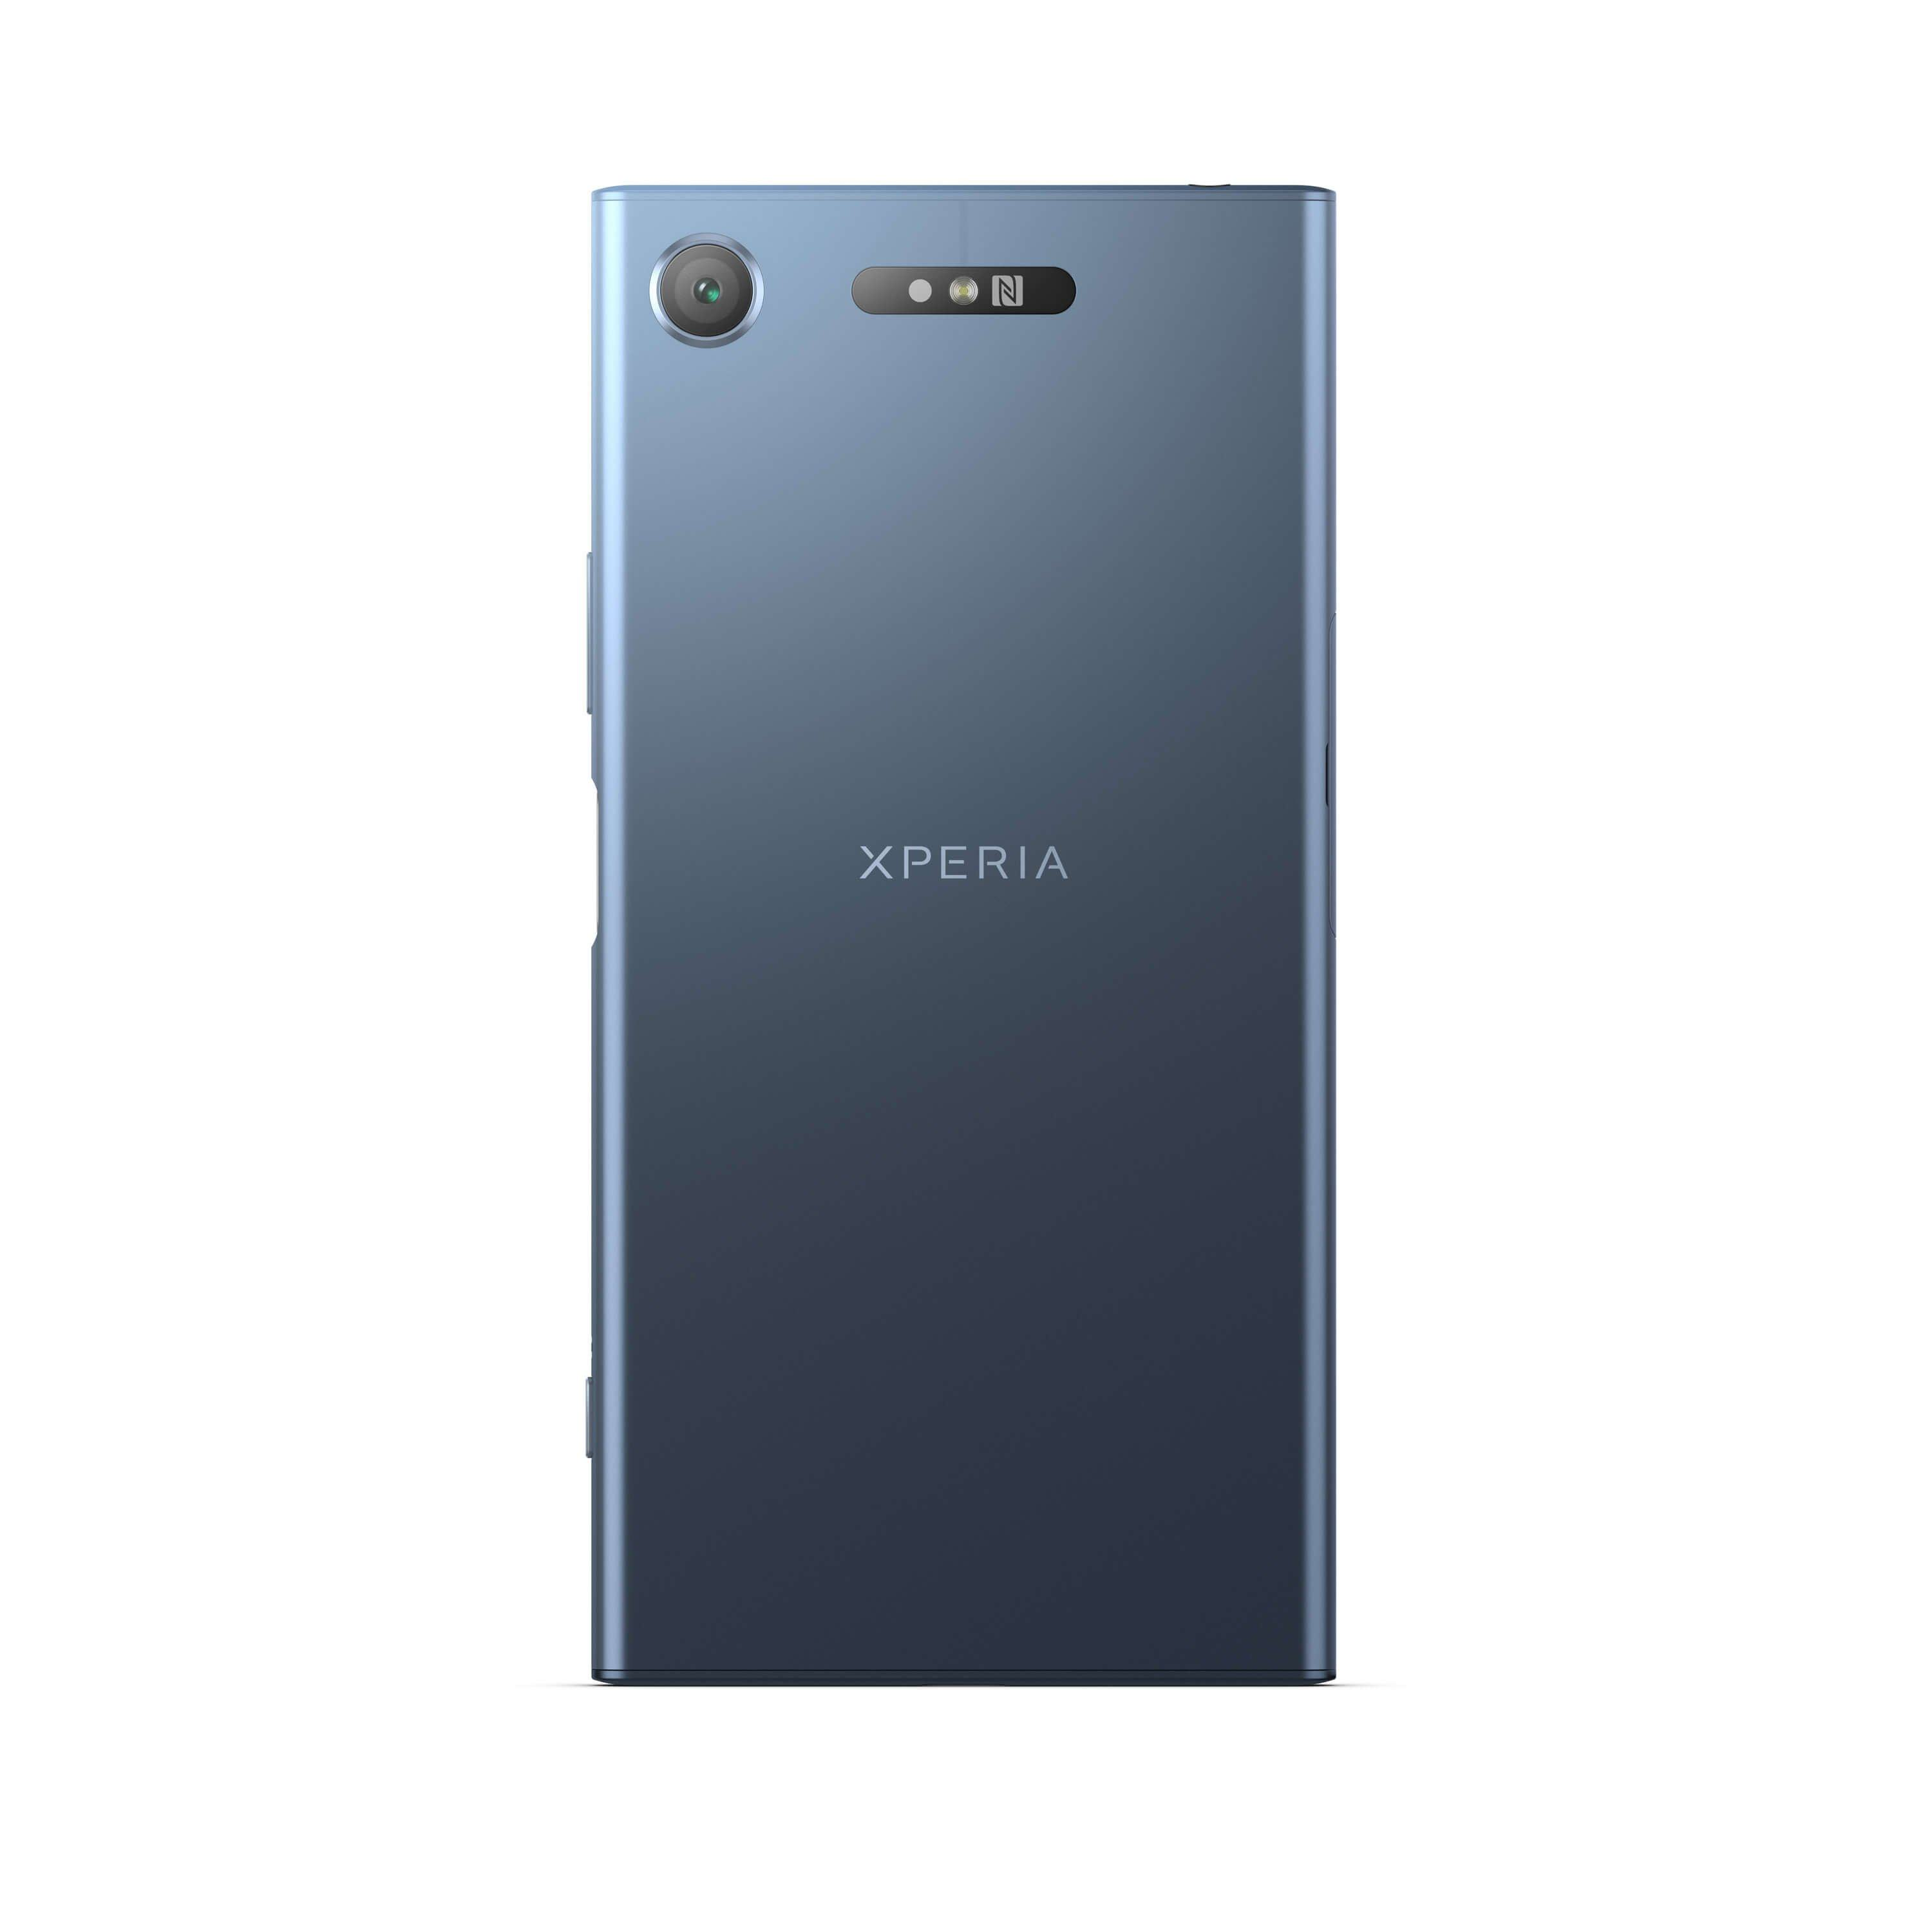 IFA 2017: Sony Xperia XZ1 und XZ1 Compact mit 3D Scan-Funktion 14